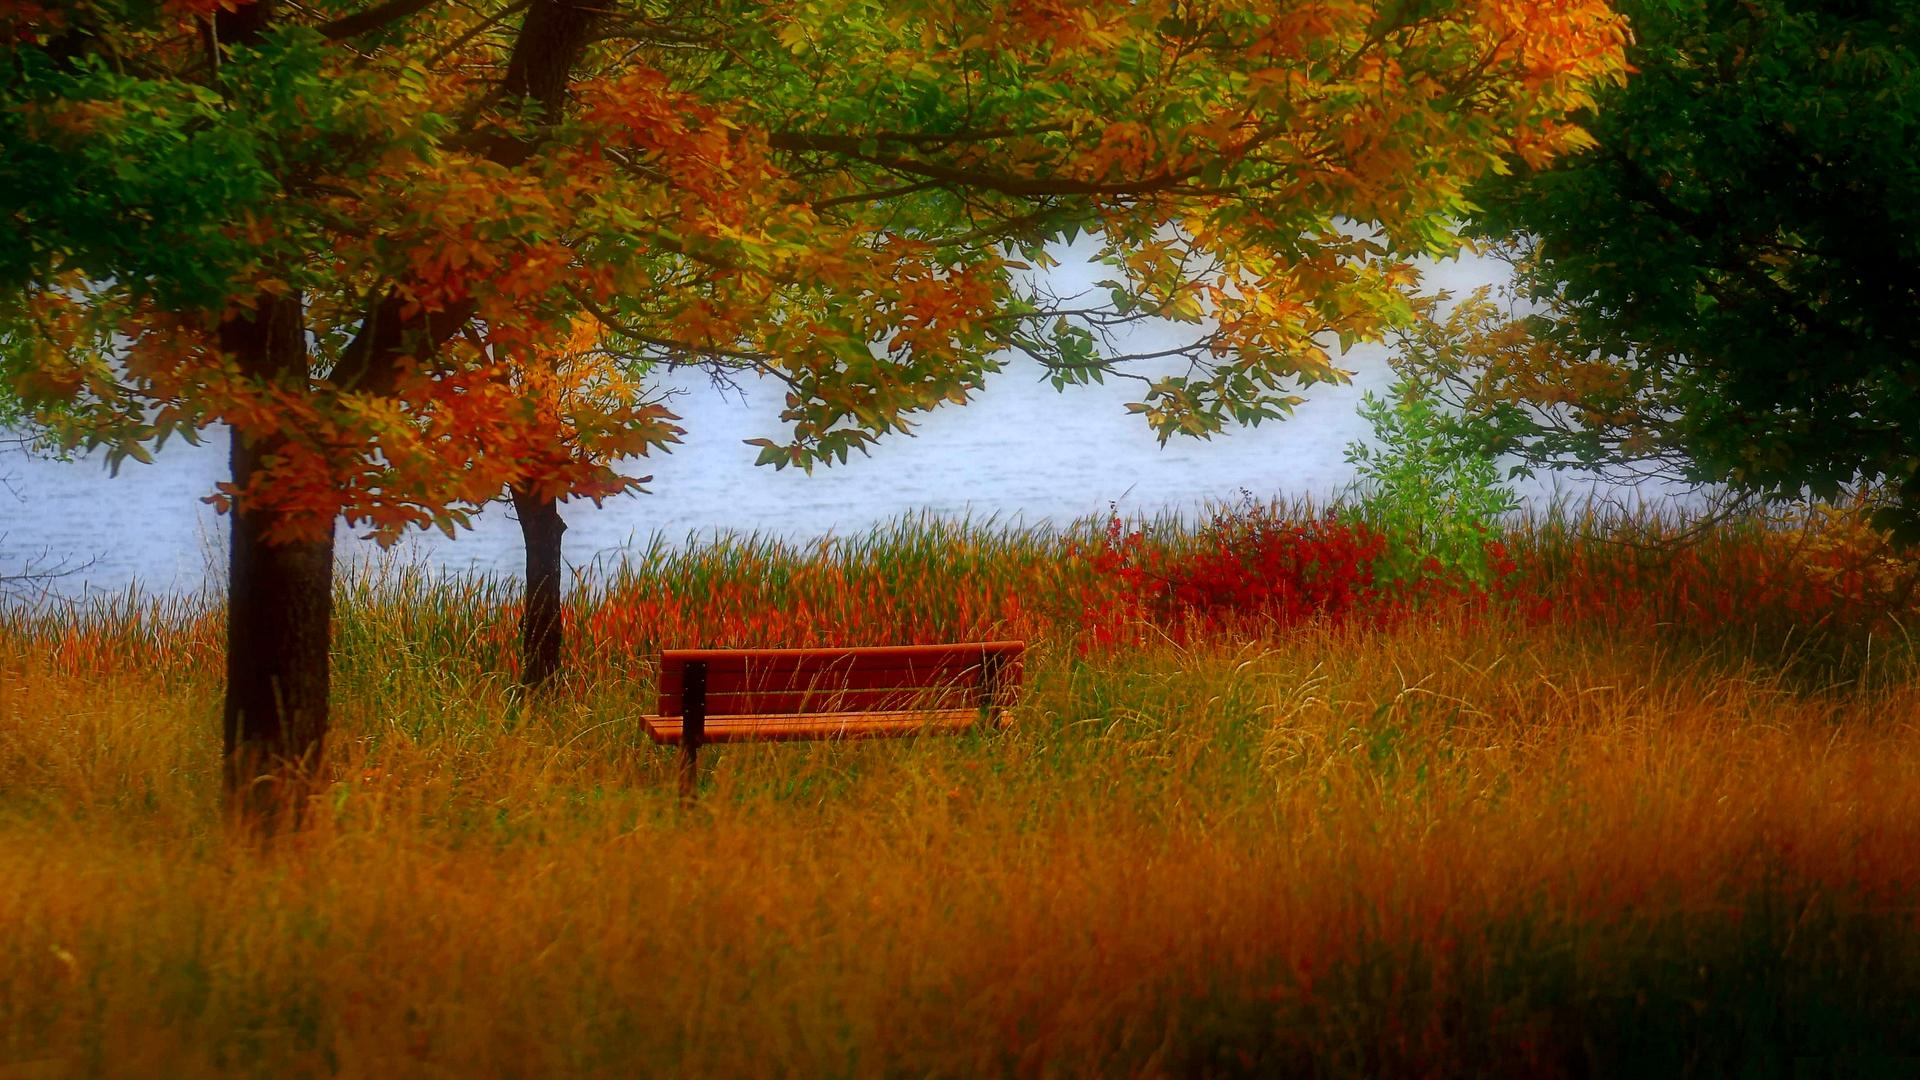 Fall Leaf Wallpaper For Mobile Autumn Bench Wallpaper Nature And Landscape Wallpaper